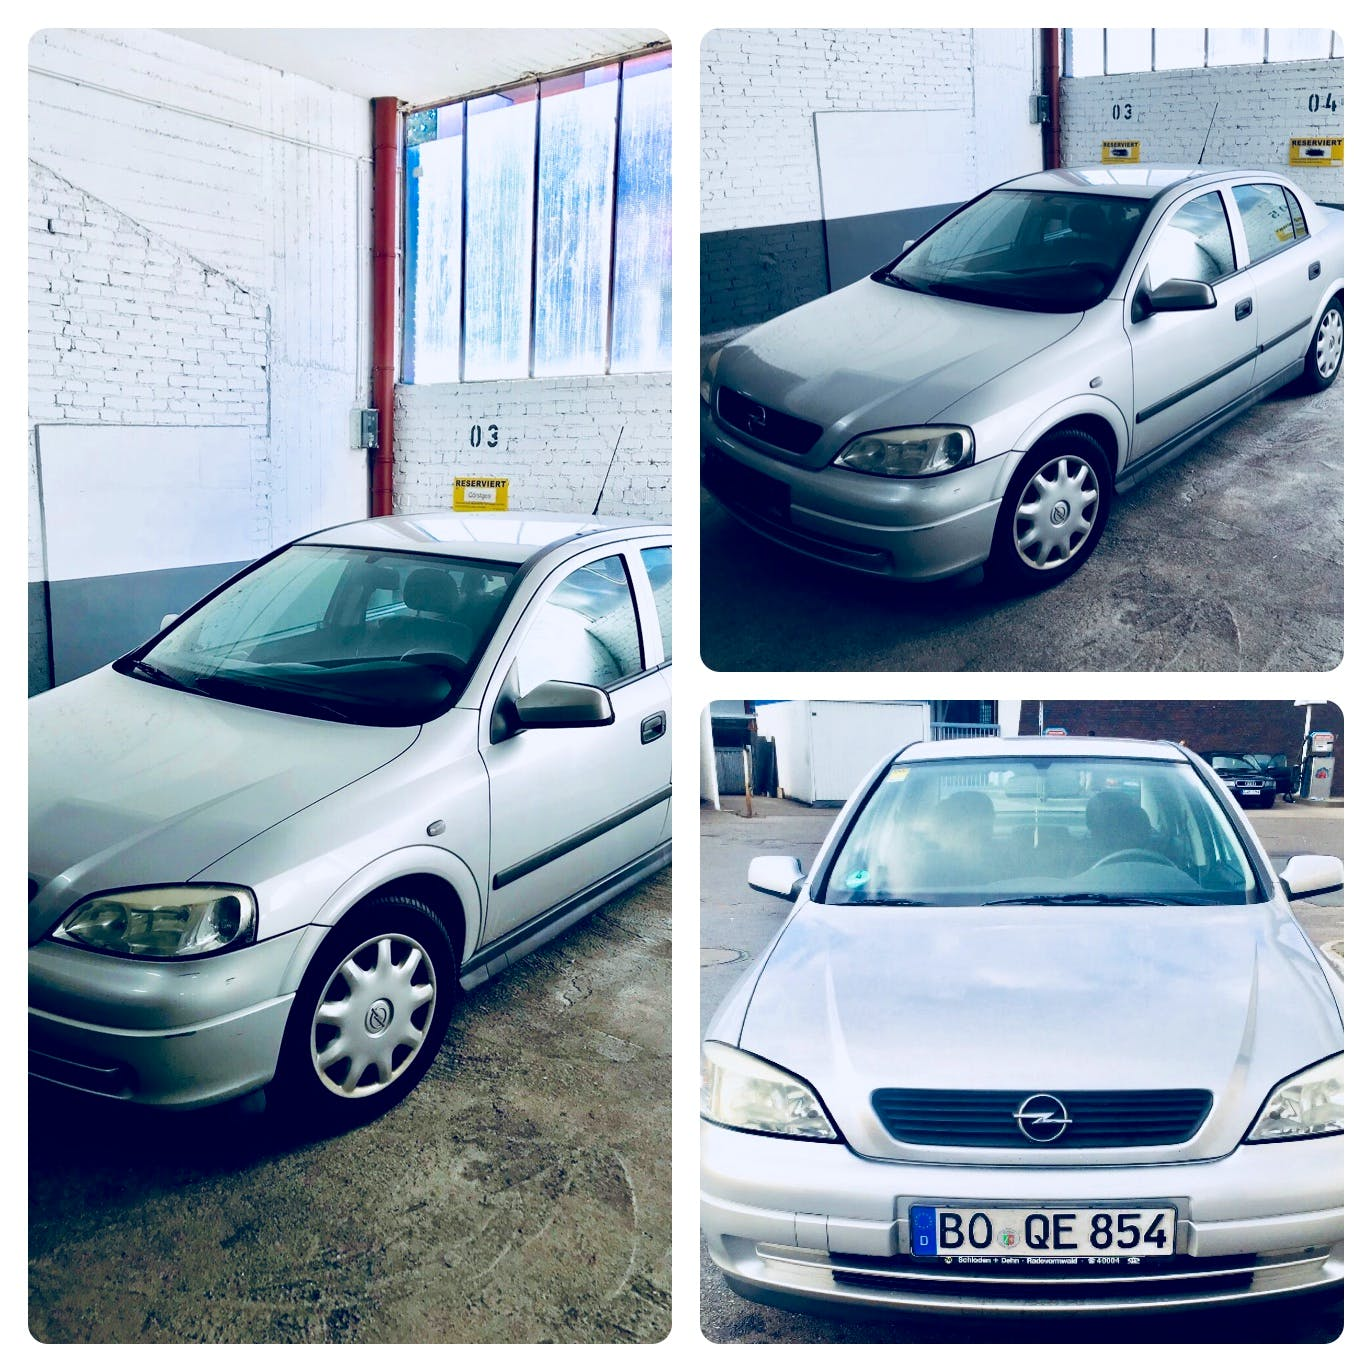 Opel Astra 1.6 16V mit CD-Player